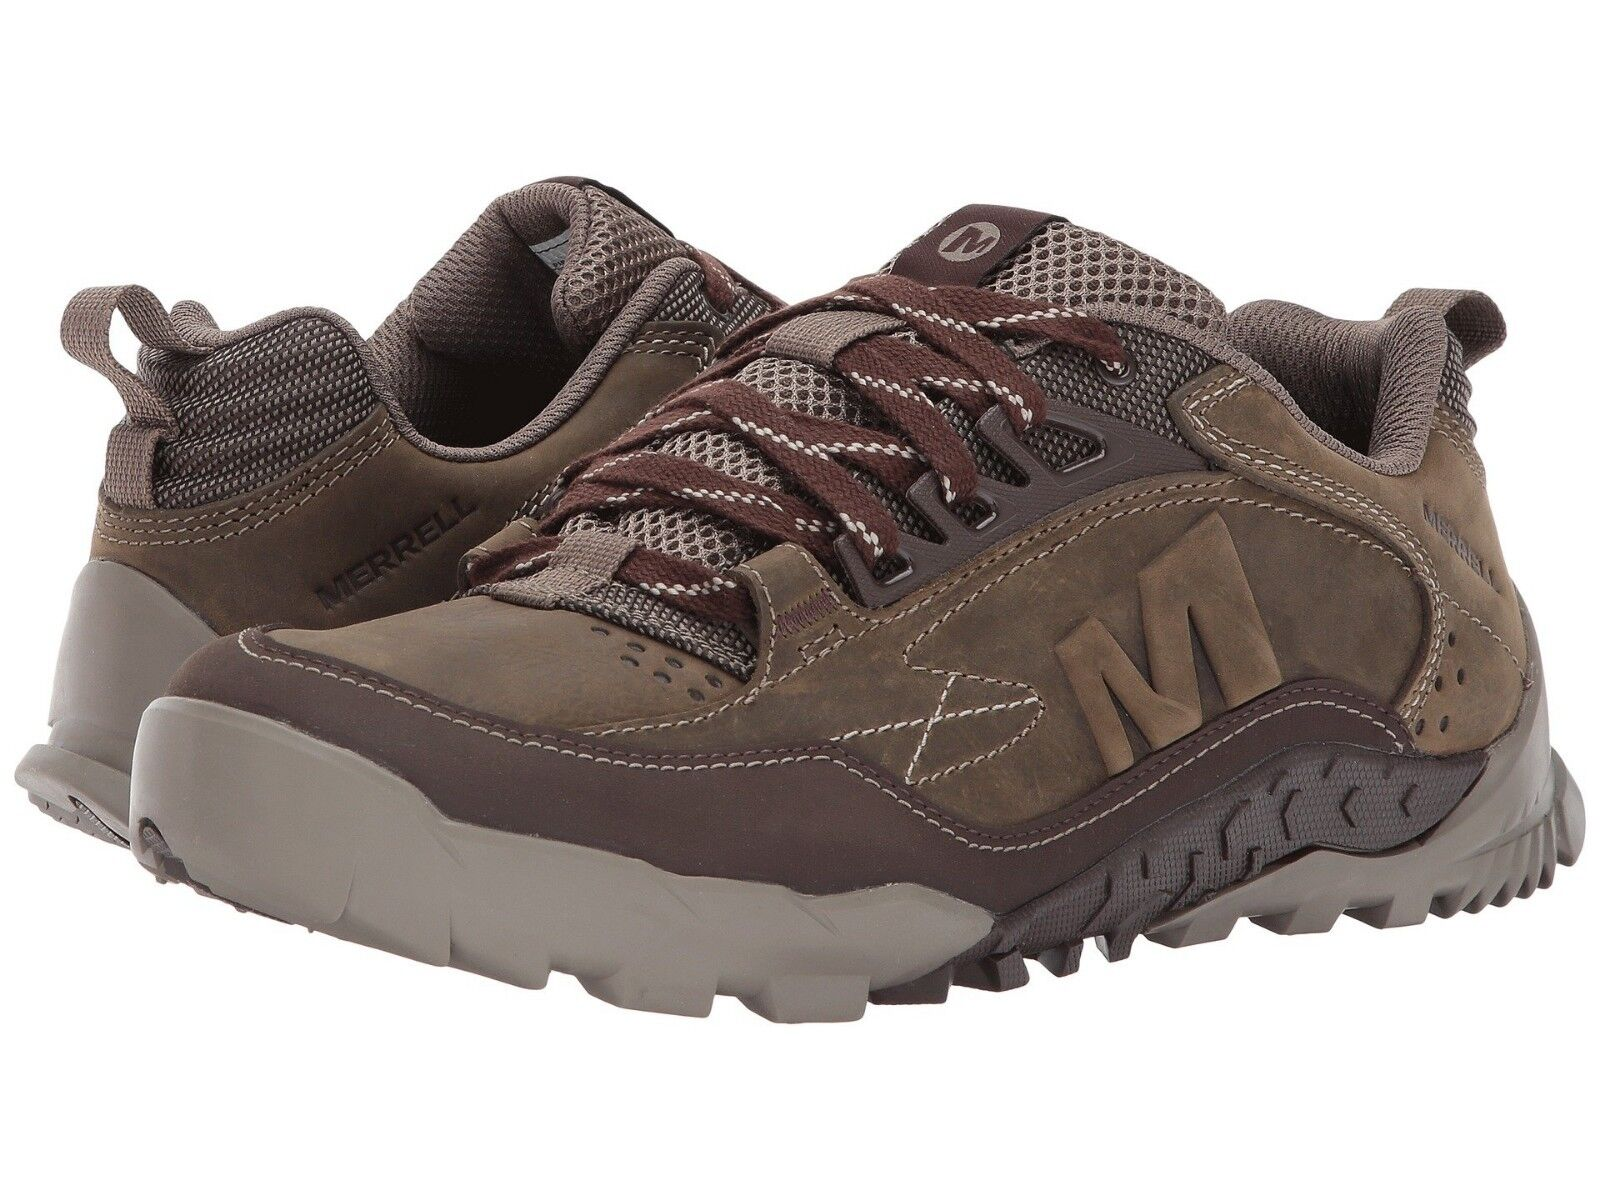 Mens Merrell Annex Trak Low Cloudy Tan Brown Nubuck Leather Trail Running shoes